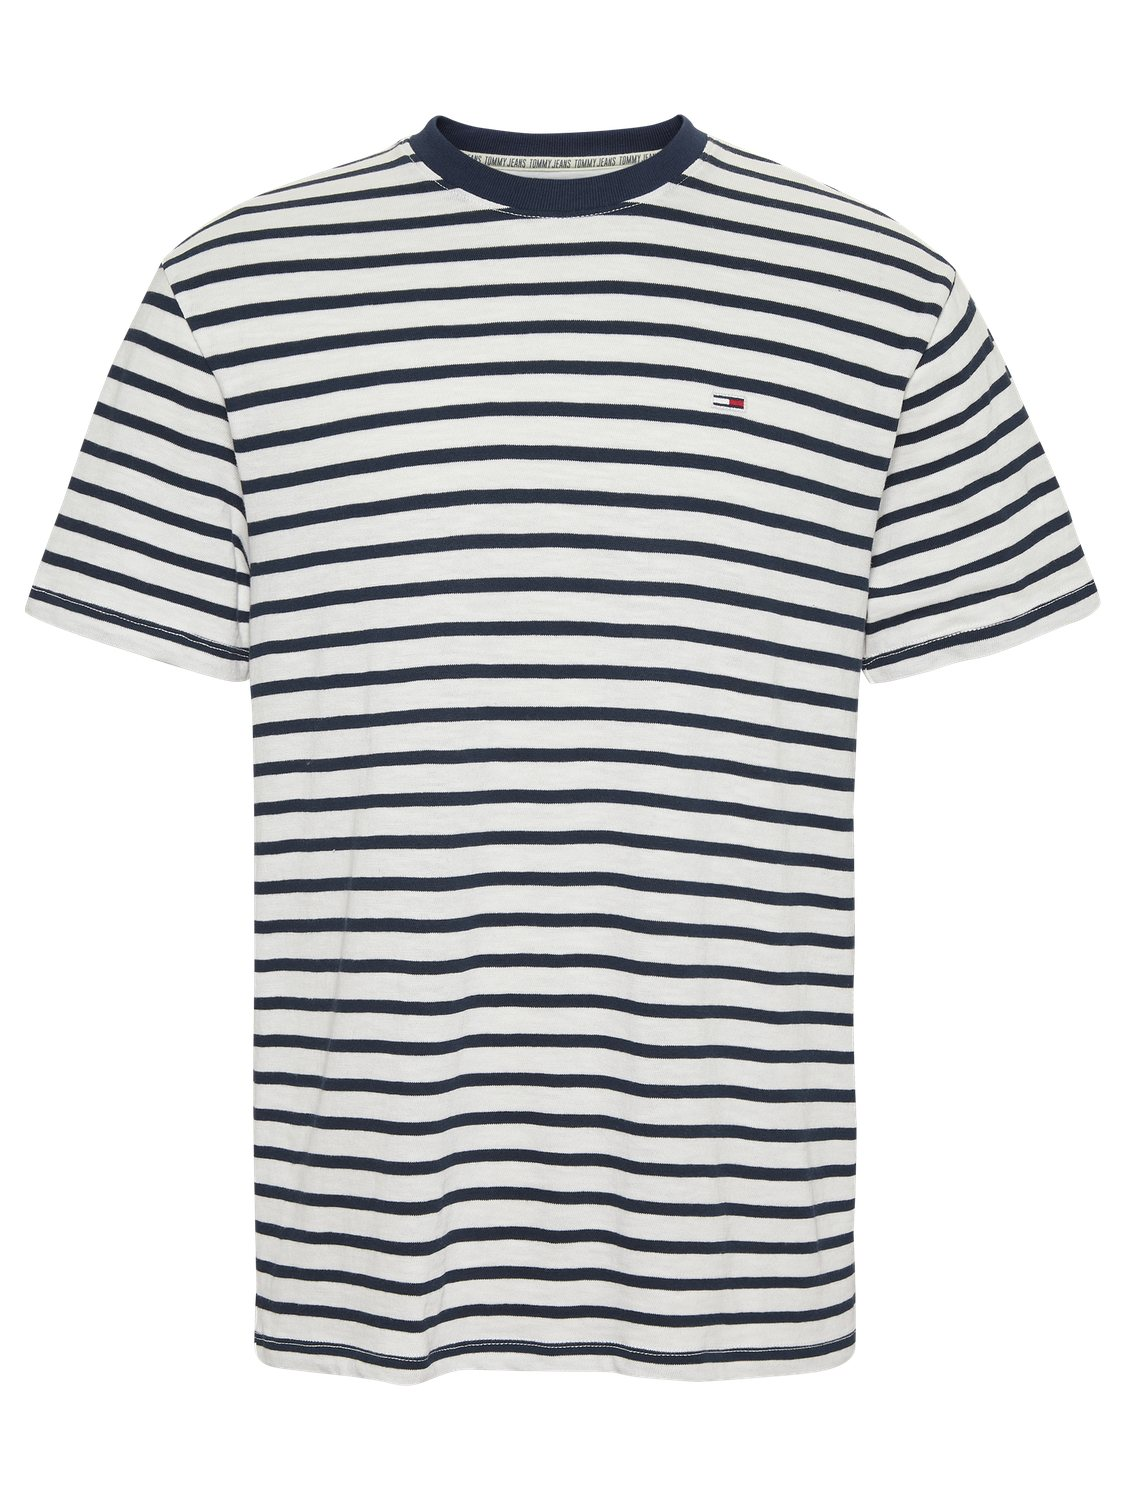 TOMMY HILFIGER - T-shirt Stripe Navy/White | GATE 36 HOBRO